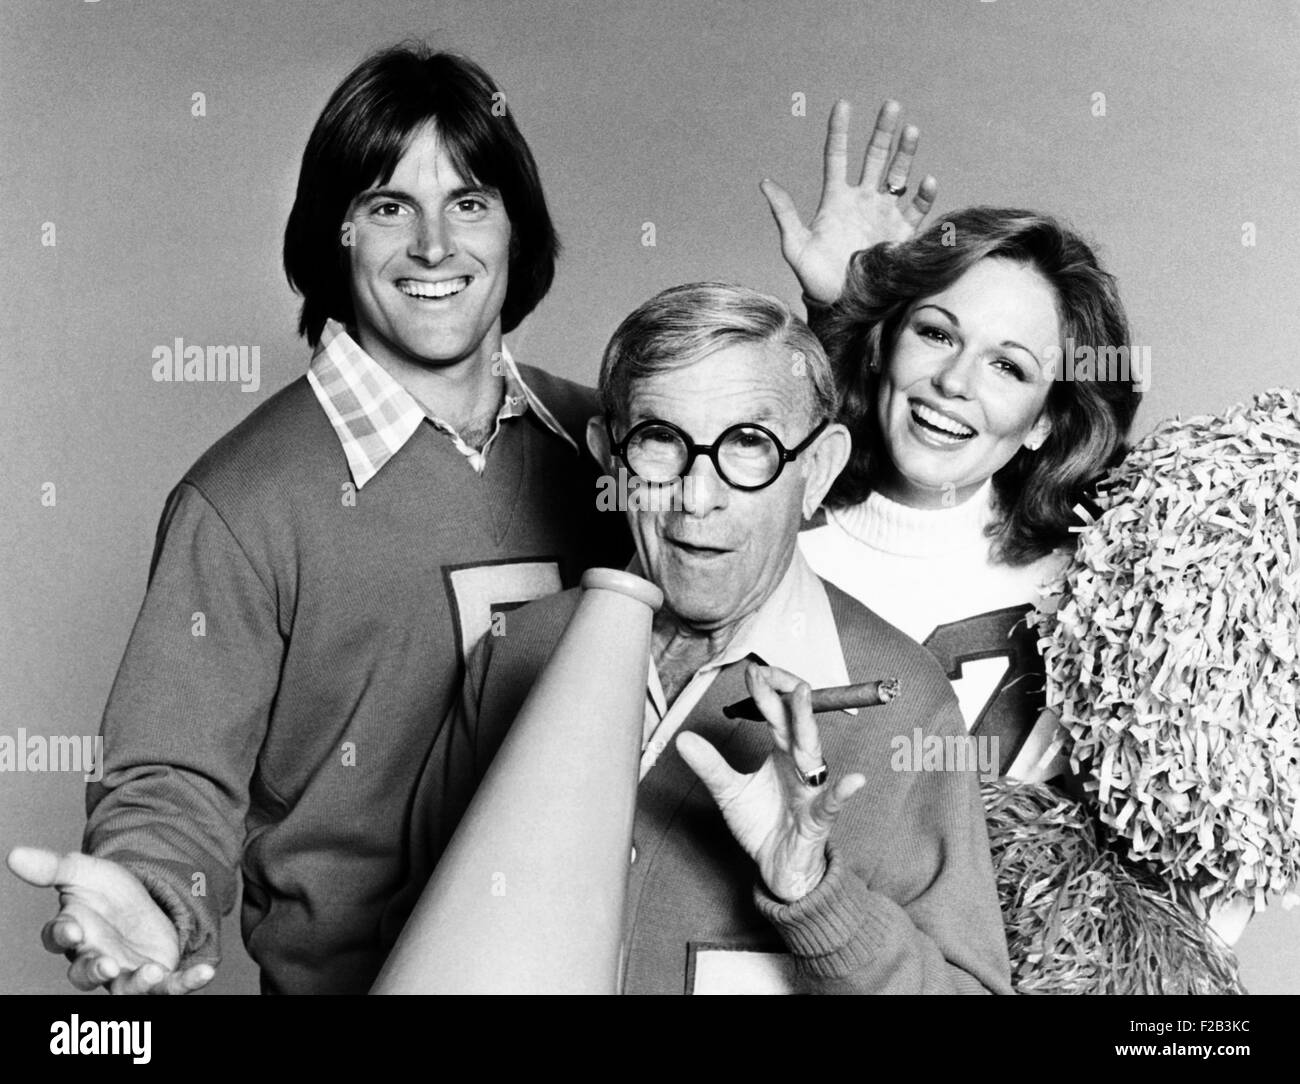 Bruce Jenner, George Burns and Phyllis George. The Olympic Champion, Veteran Comedian, and 1971 Miss America appeared Stock Photo